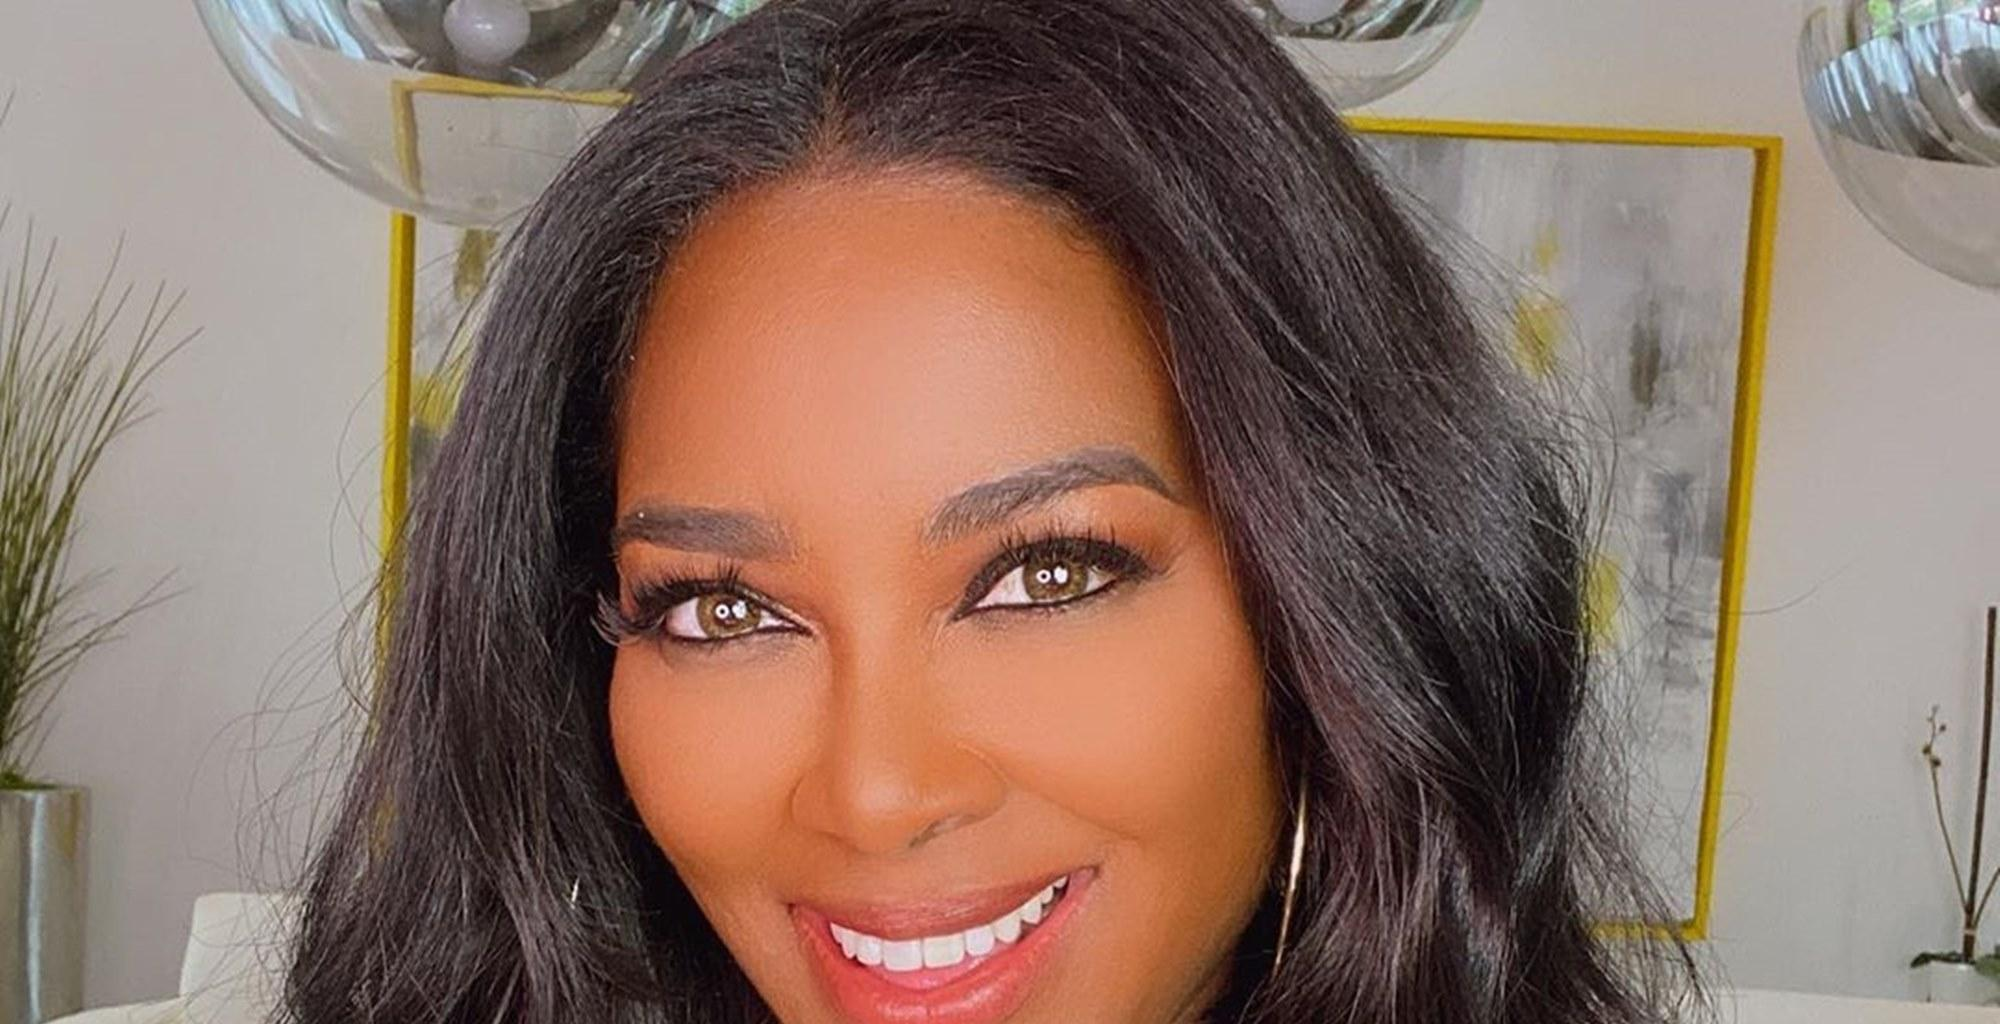 Kenya Moore Gets Dolled Up In New Photo Before She Shreds NeNe Leakes For These Wild Accusations